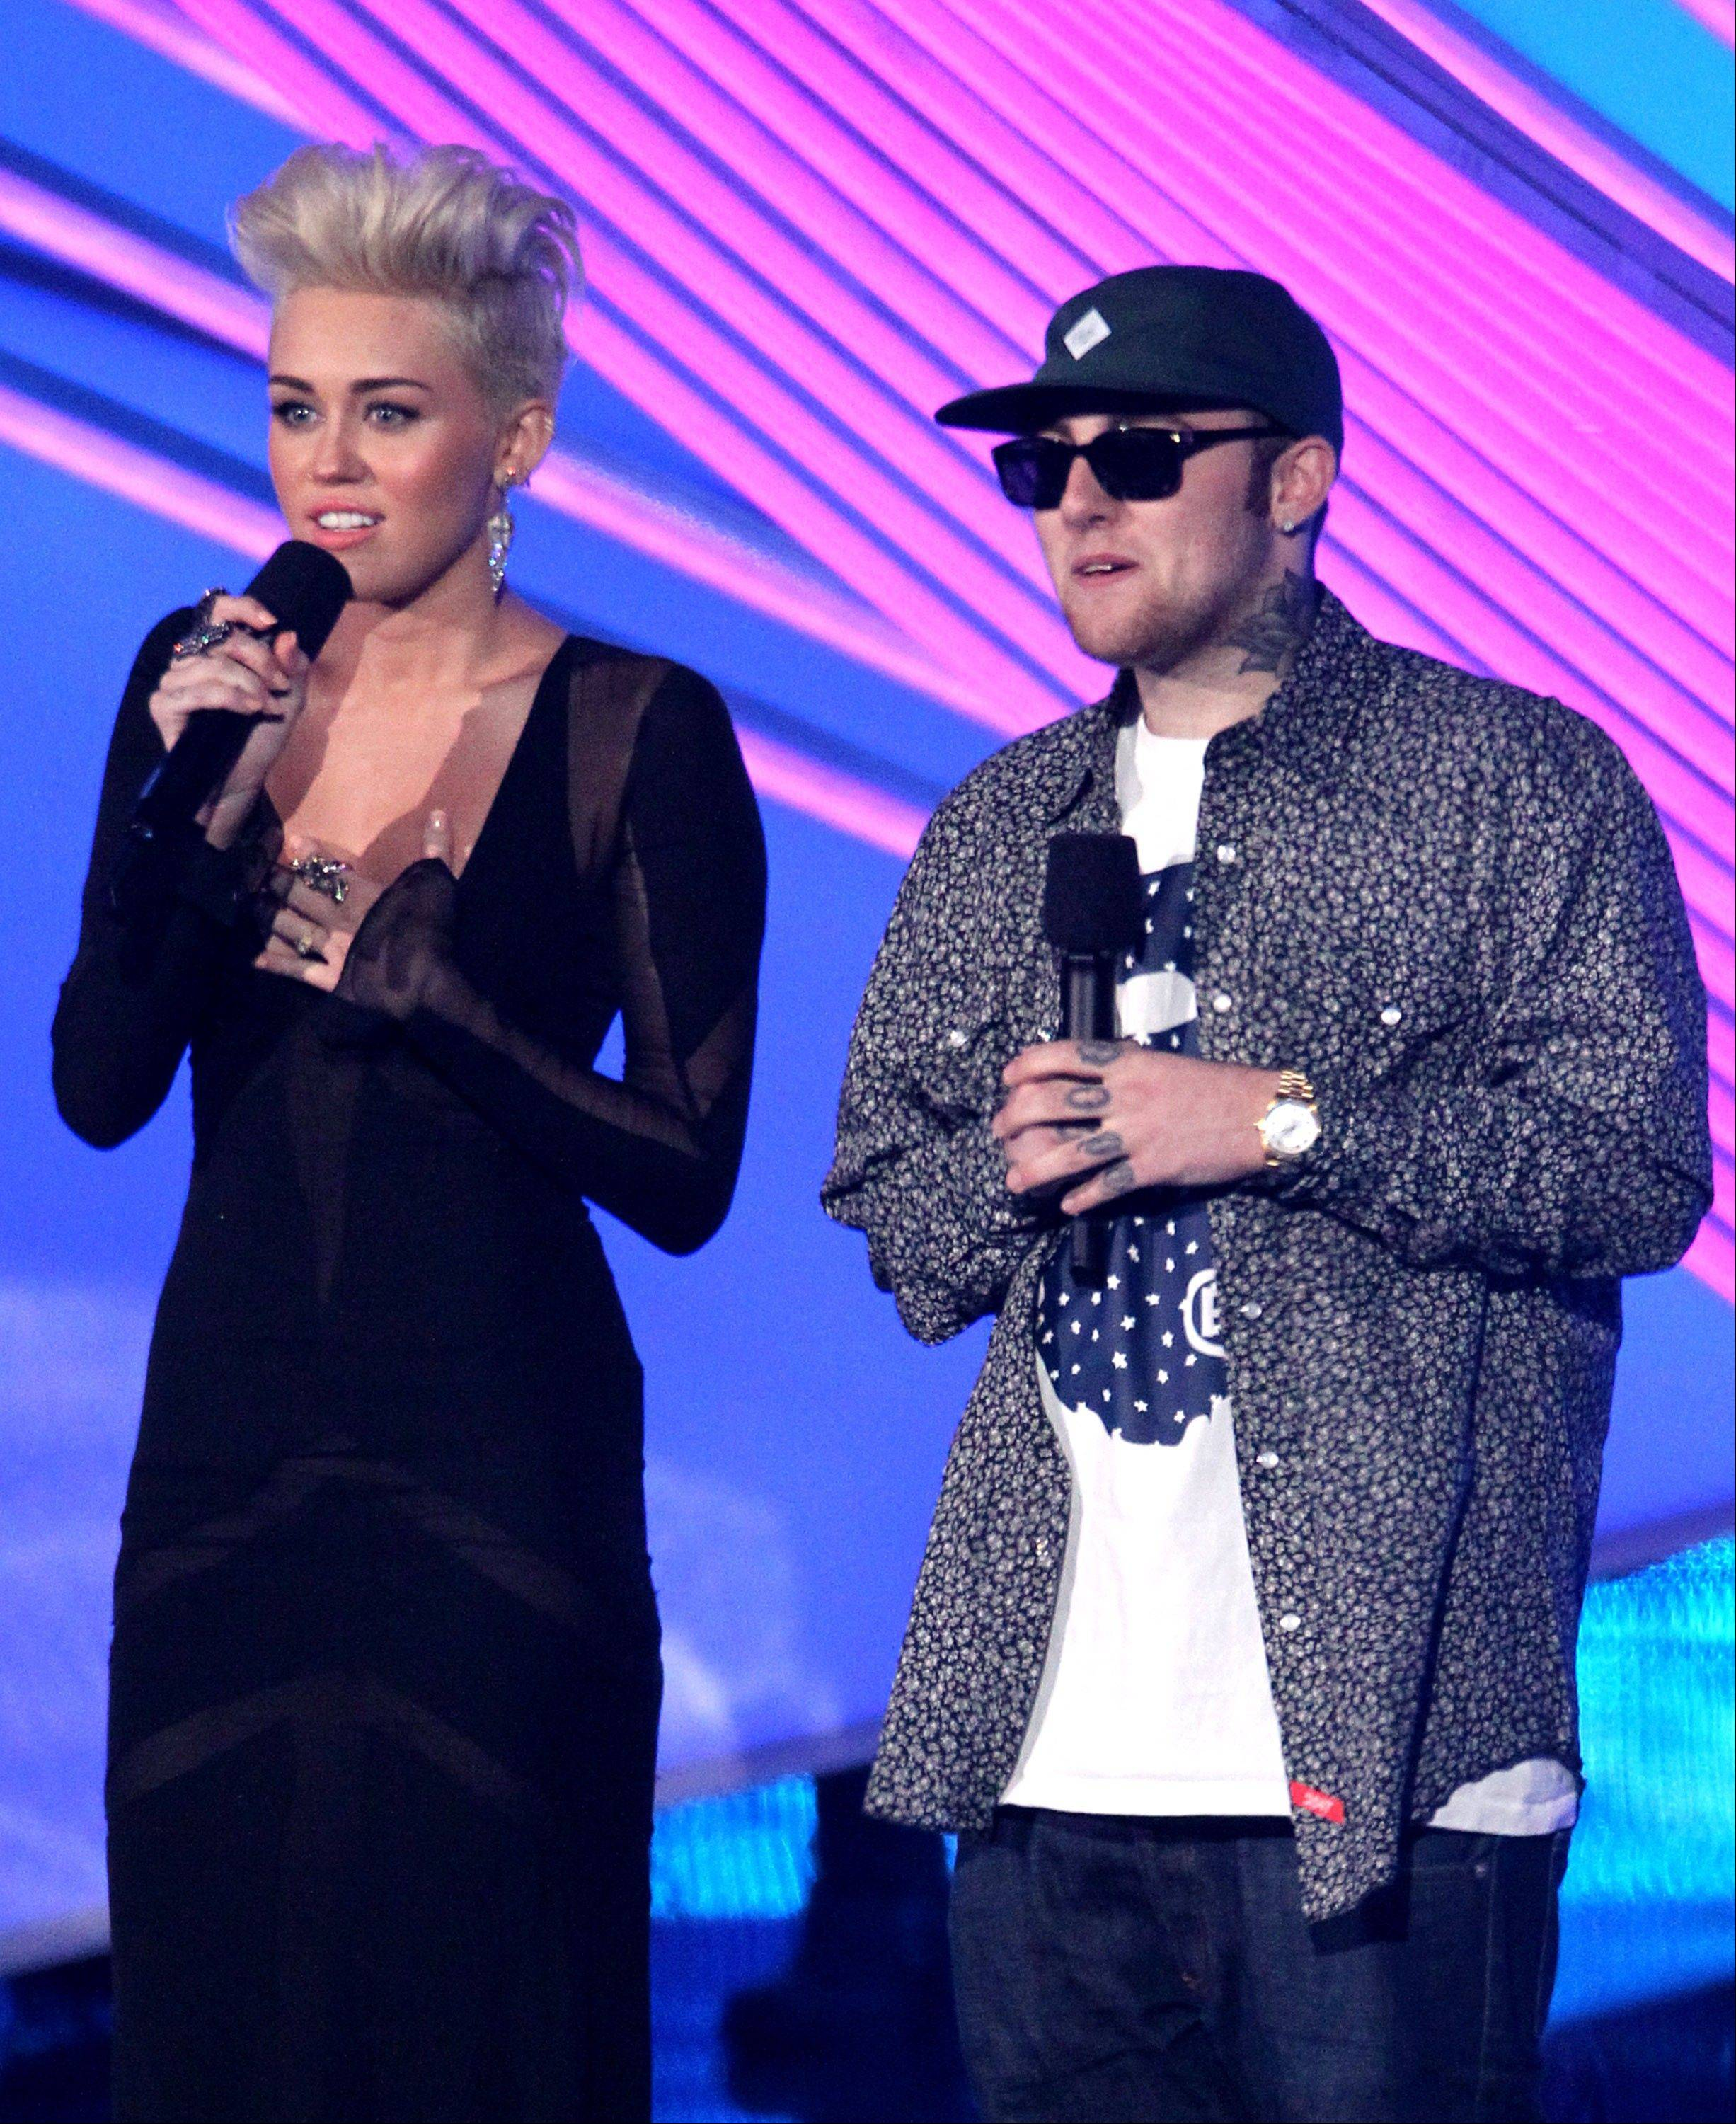 Miley Cyrus, left, and Mac Miller present an award onstage at the MTV Video Music Awards on Thursday, Sept. 6, 2012, in Los Angeles.